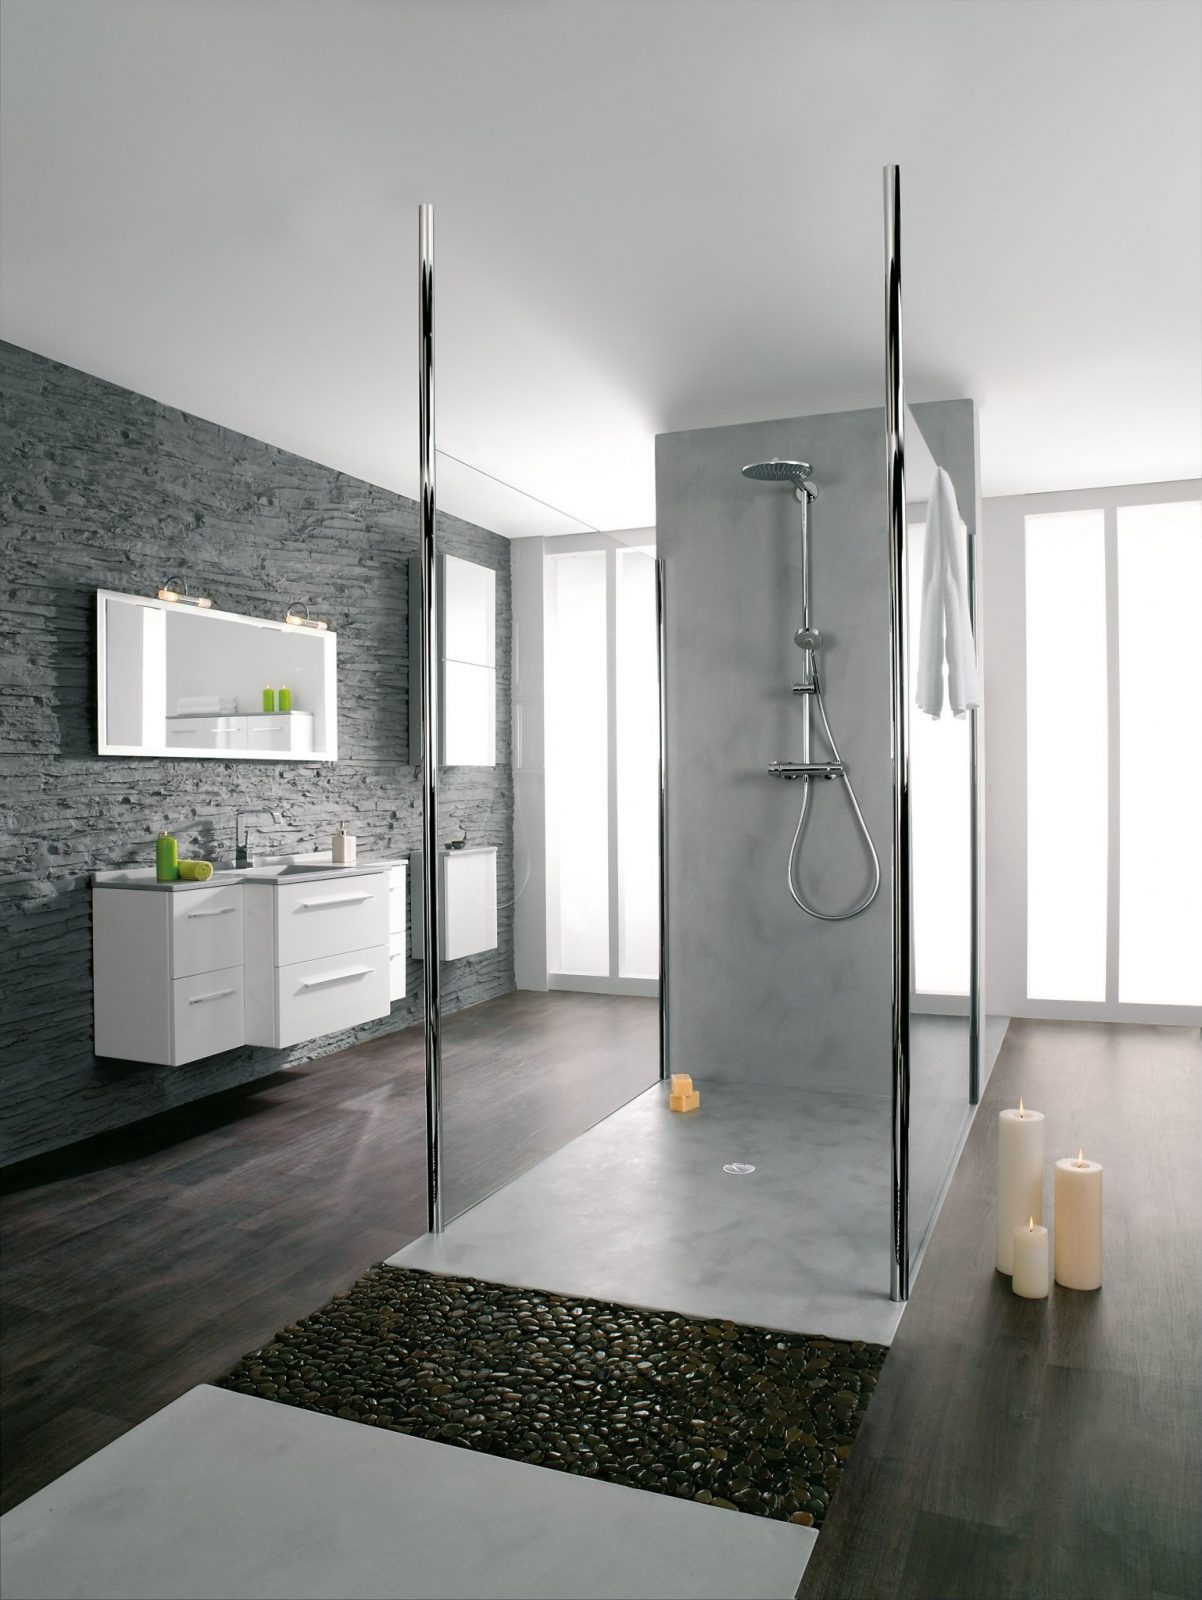 panolux salle de bain perfect les panneaux dhabillage de la salle de bain artwall dartweger. Black Bedroom Furniture Sets. Home Design Ideas